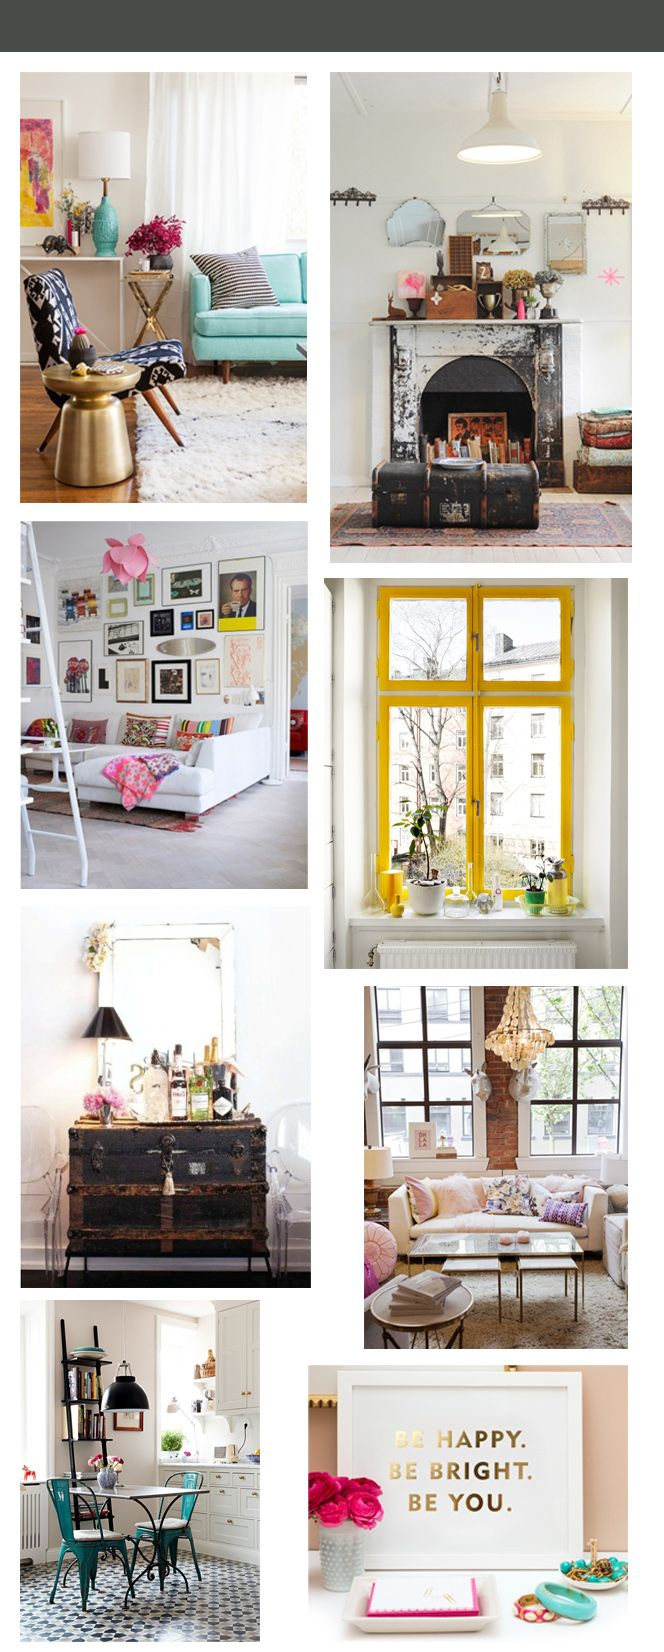 apartment decor inspiration the glossy guide: make your apartment a home-REALLY good tips in here @Rachel Altman and @Mary Powers Damon.. seriously though!